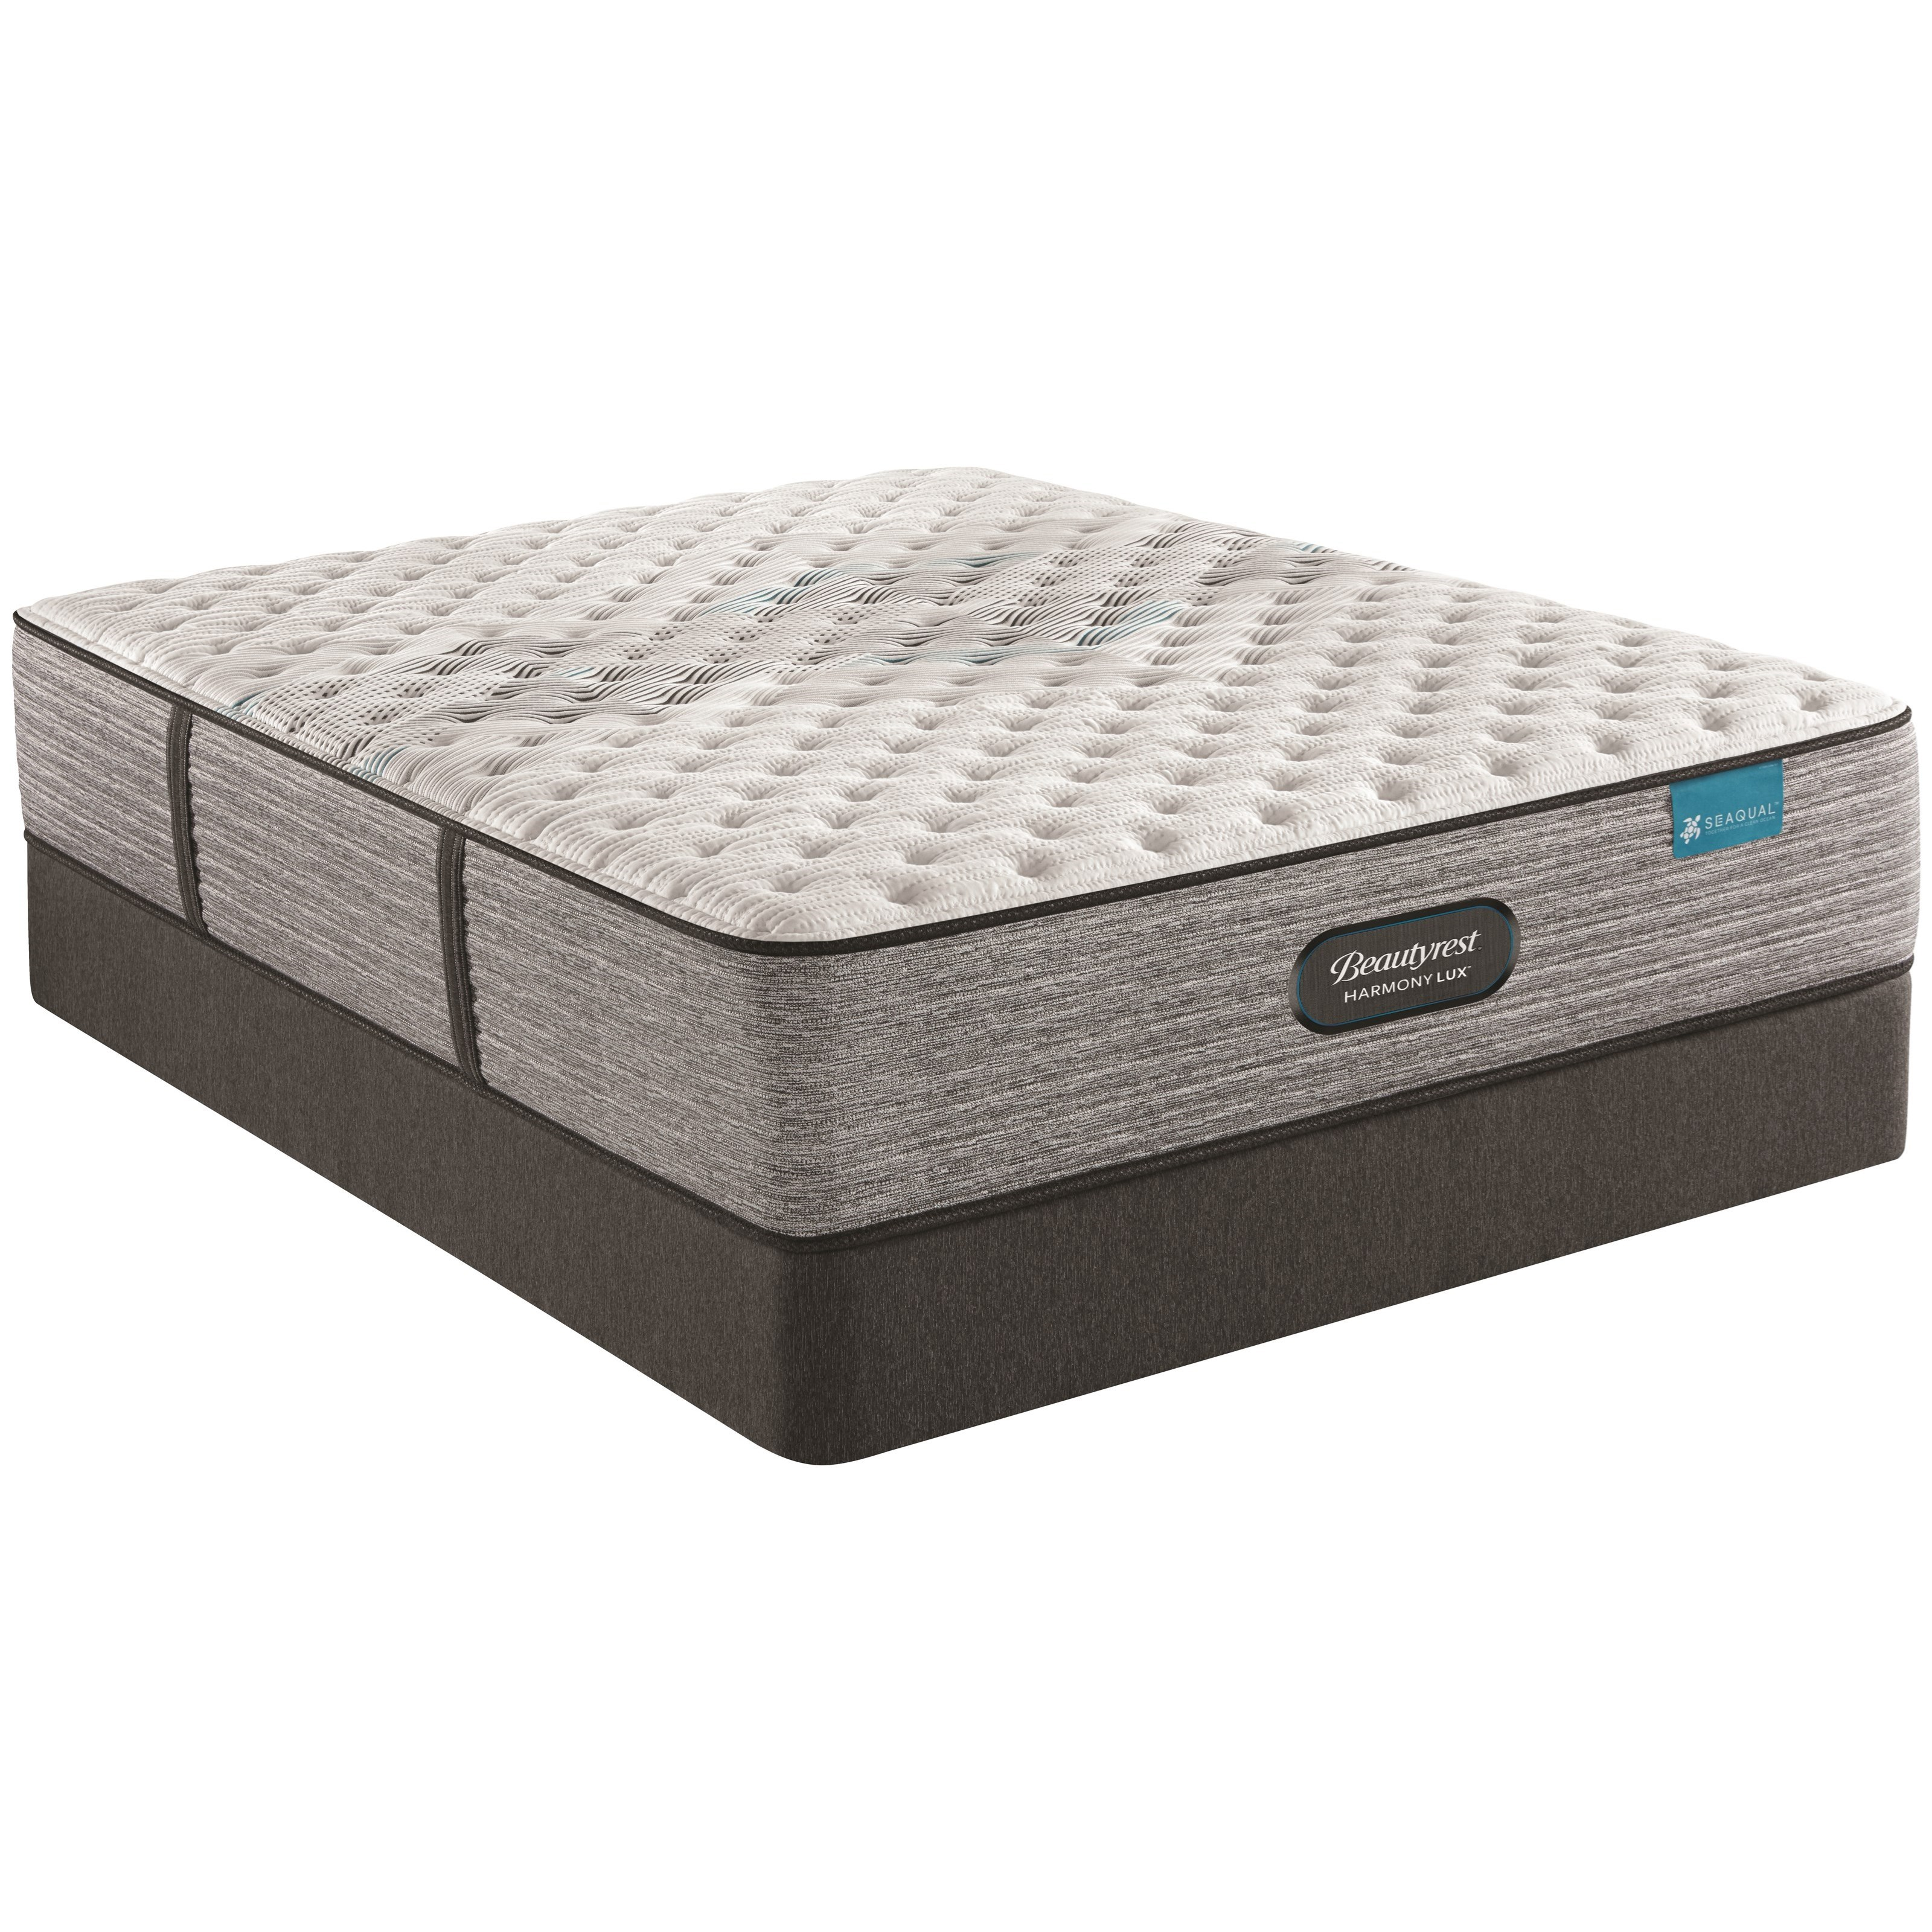 """Carbon Extra Firm Full 13 1/2"""" Extra Firm Mattress Set by Beautyrest at Rotmans"""